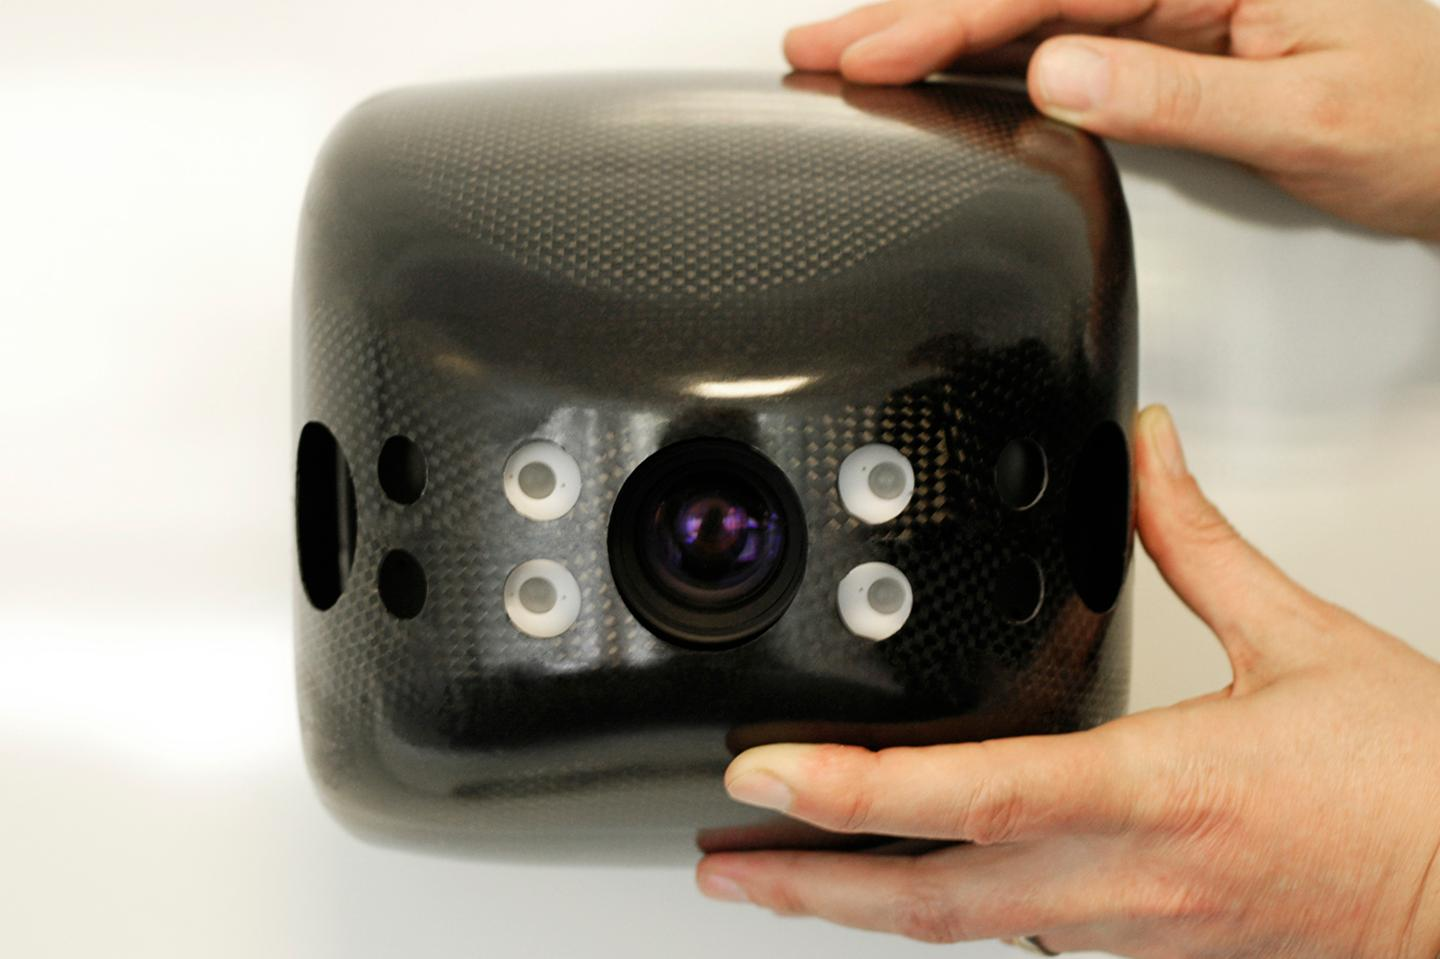 A TriDiCam camera, outfitted with the new 3D CMOS system